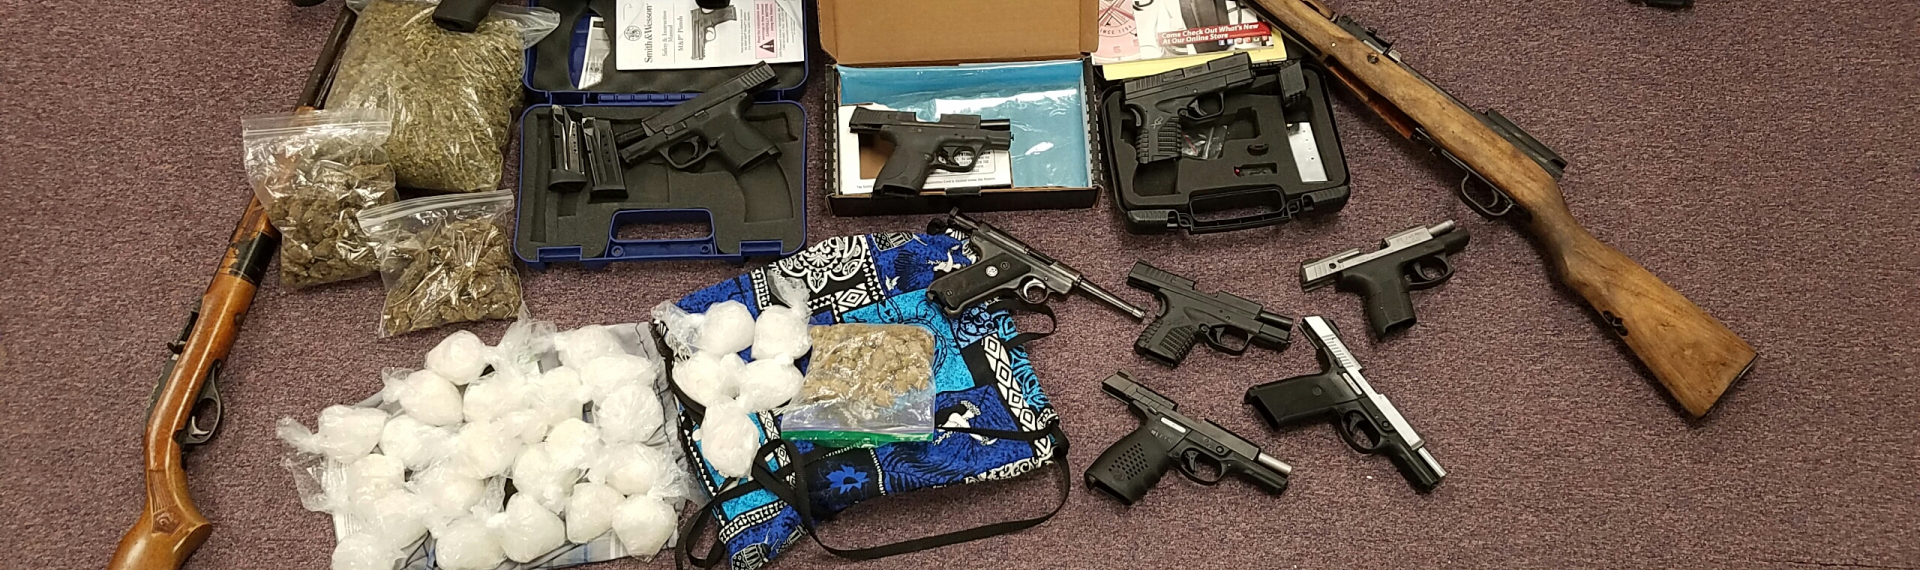 Photo of Narcotics & Firearms